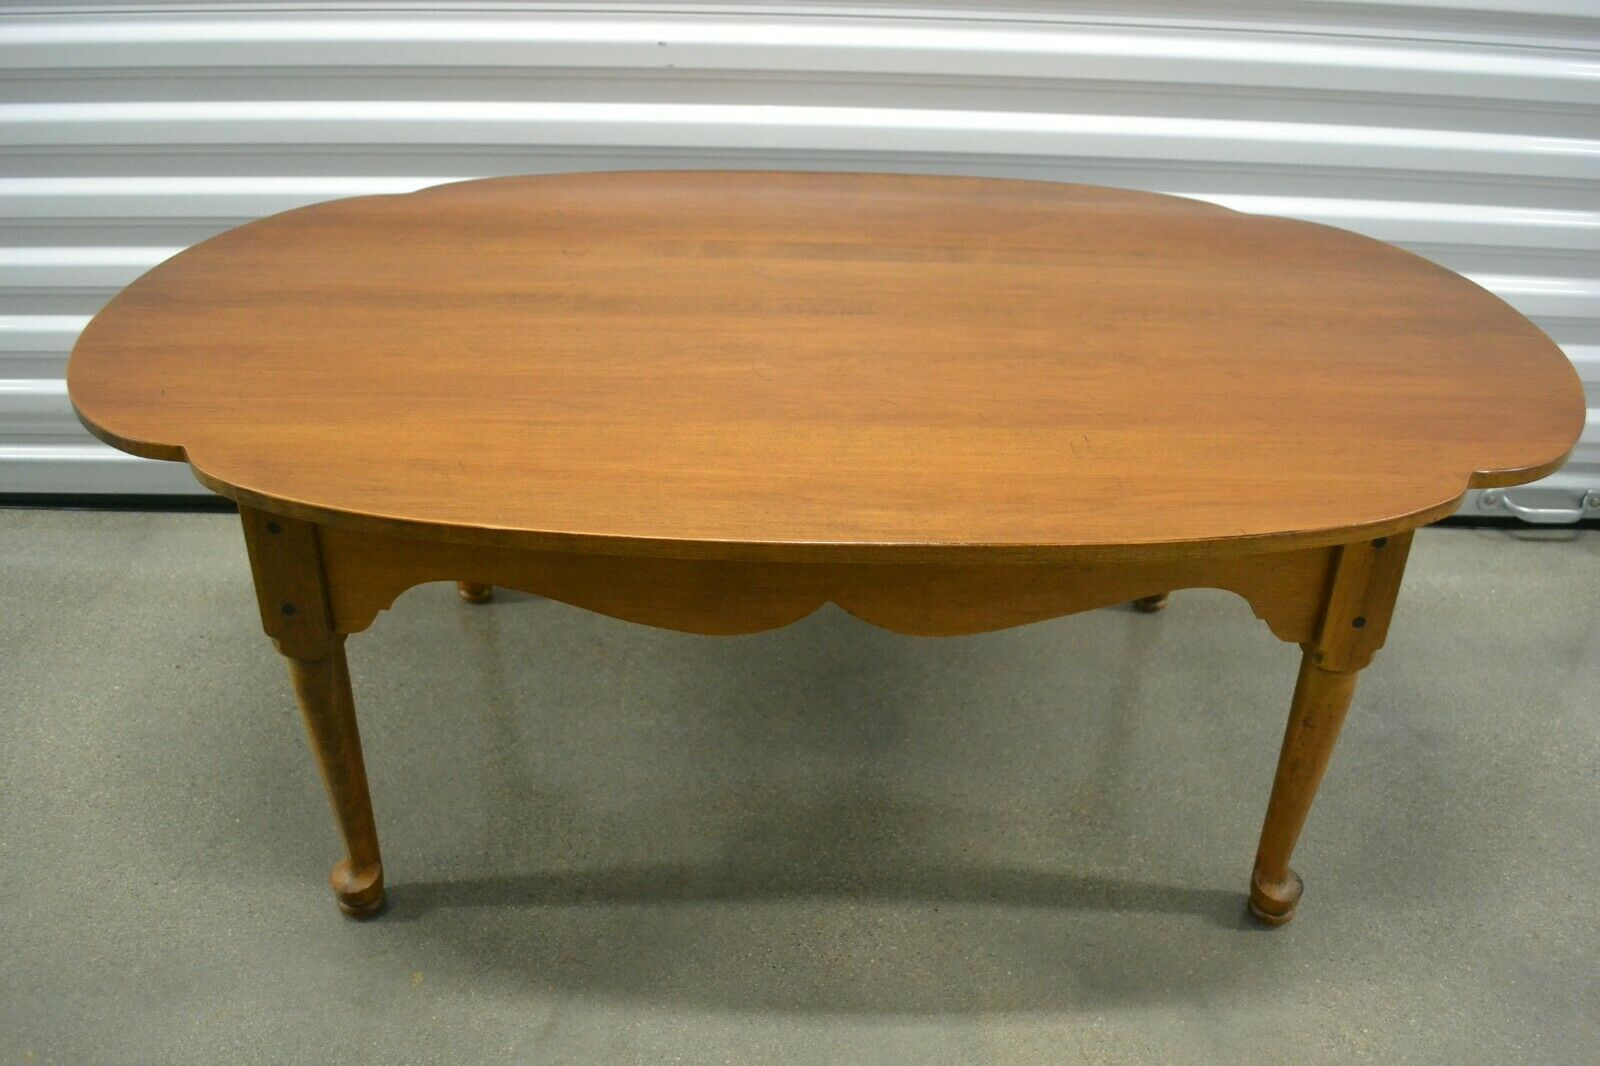 Ethan Allen Circa 1776 Coffee Table Oval Maple Vintage Glass Top 18 8020 218 Ebay Coffee Table Home Furniture Table [ 1066 x 1600 Pixel ]